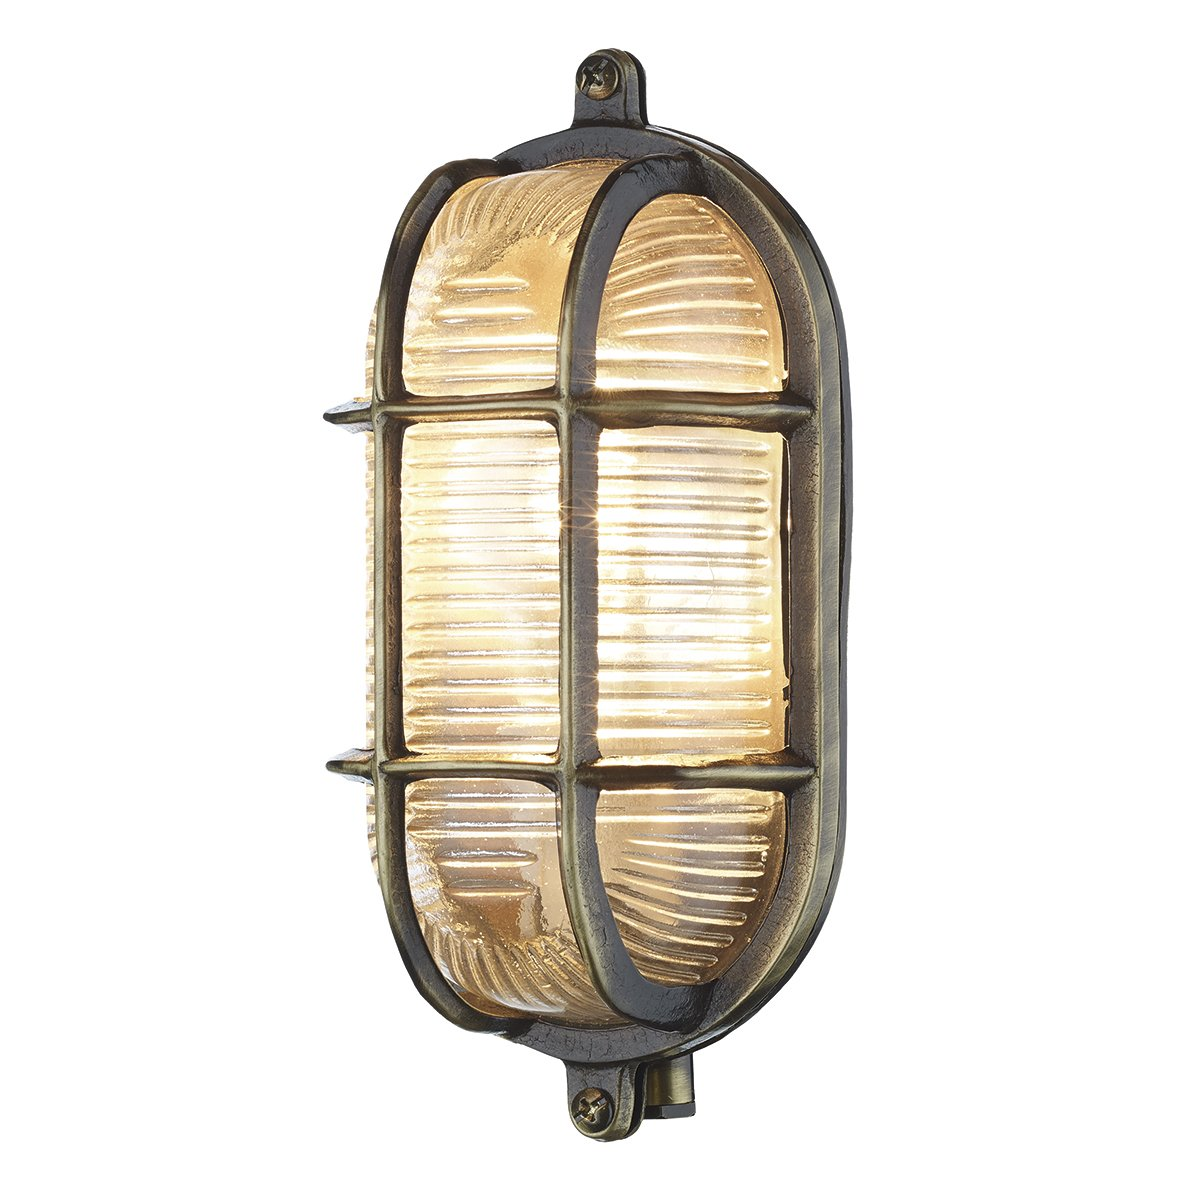 David Hunt Lighting ADM5240 Admiral 1 Light Small Oval Wall Light Brass